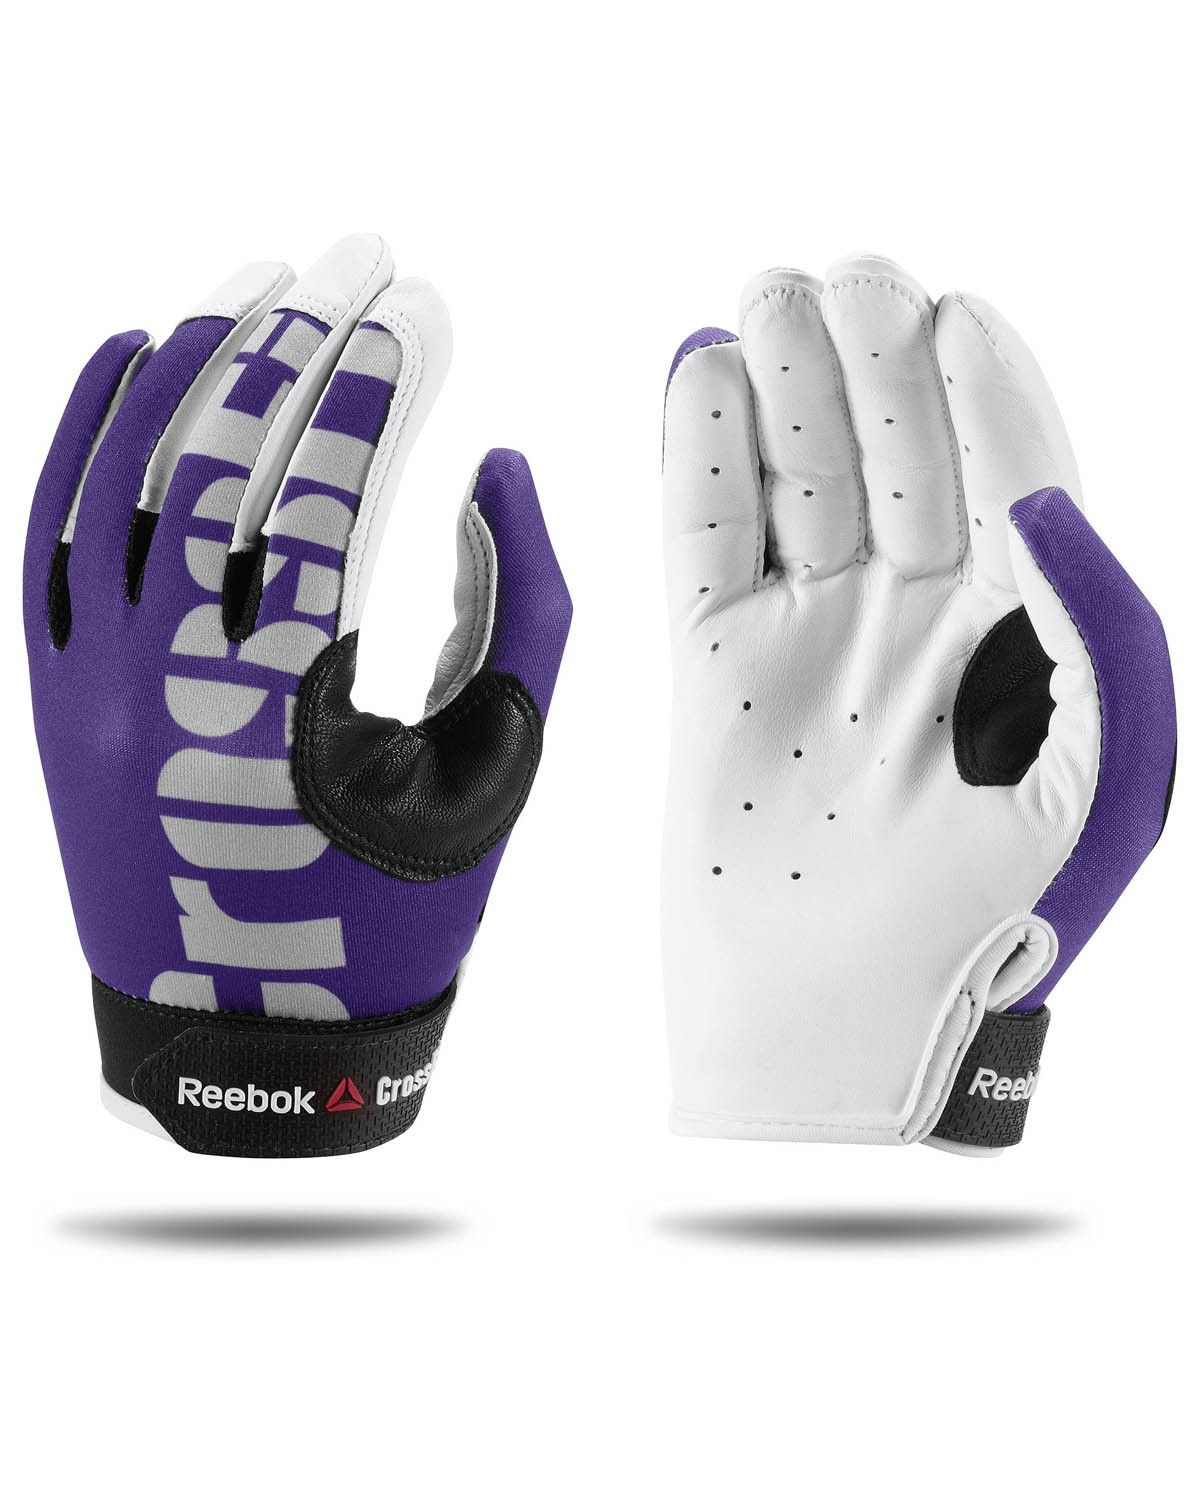 Reebok Crossfit Training Gloves: Reebok Gloves Crossfit Cheap > OFF37% The Largest Catalog